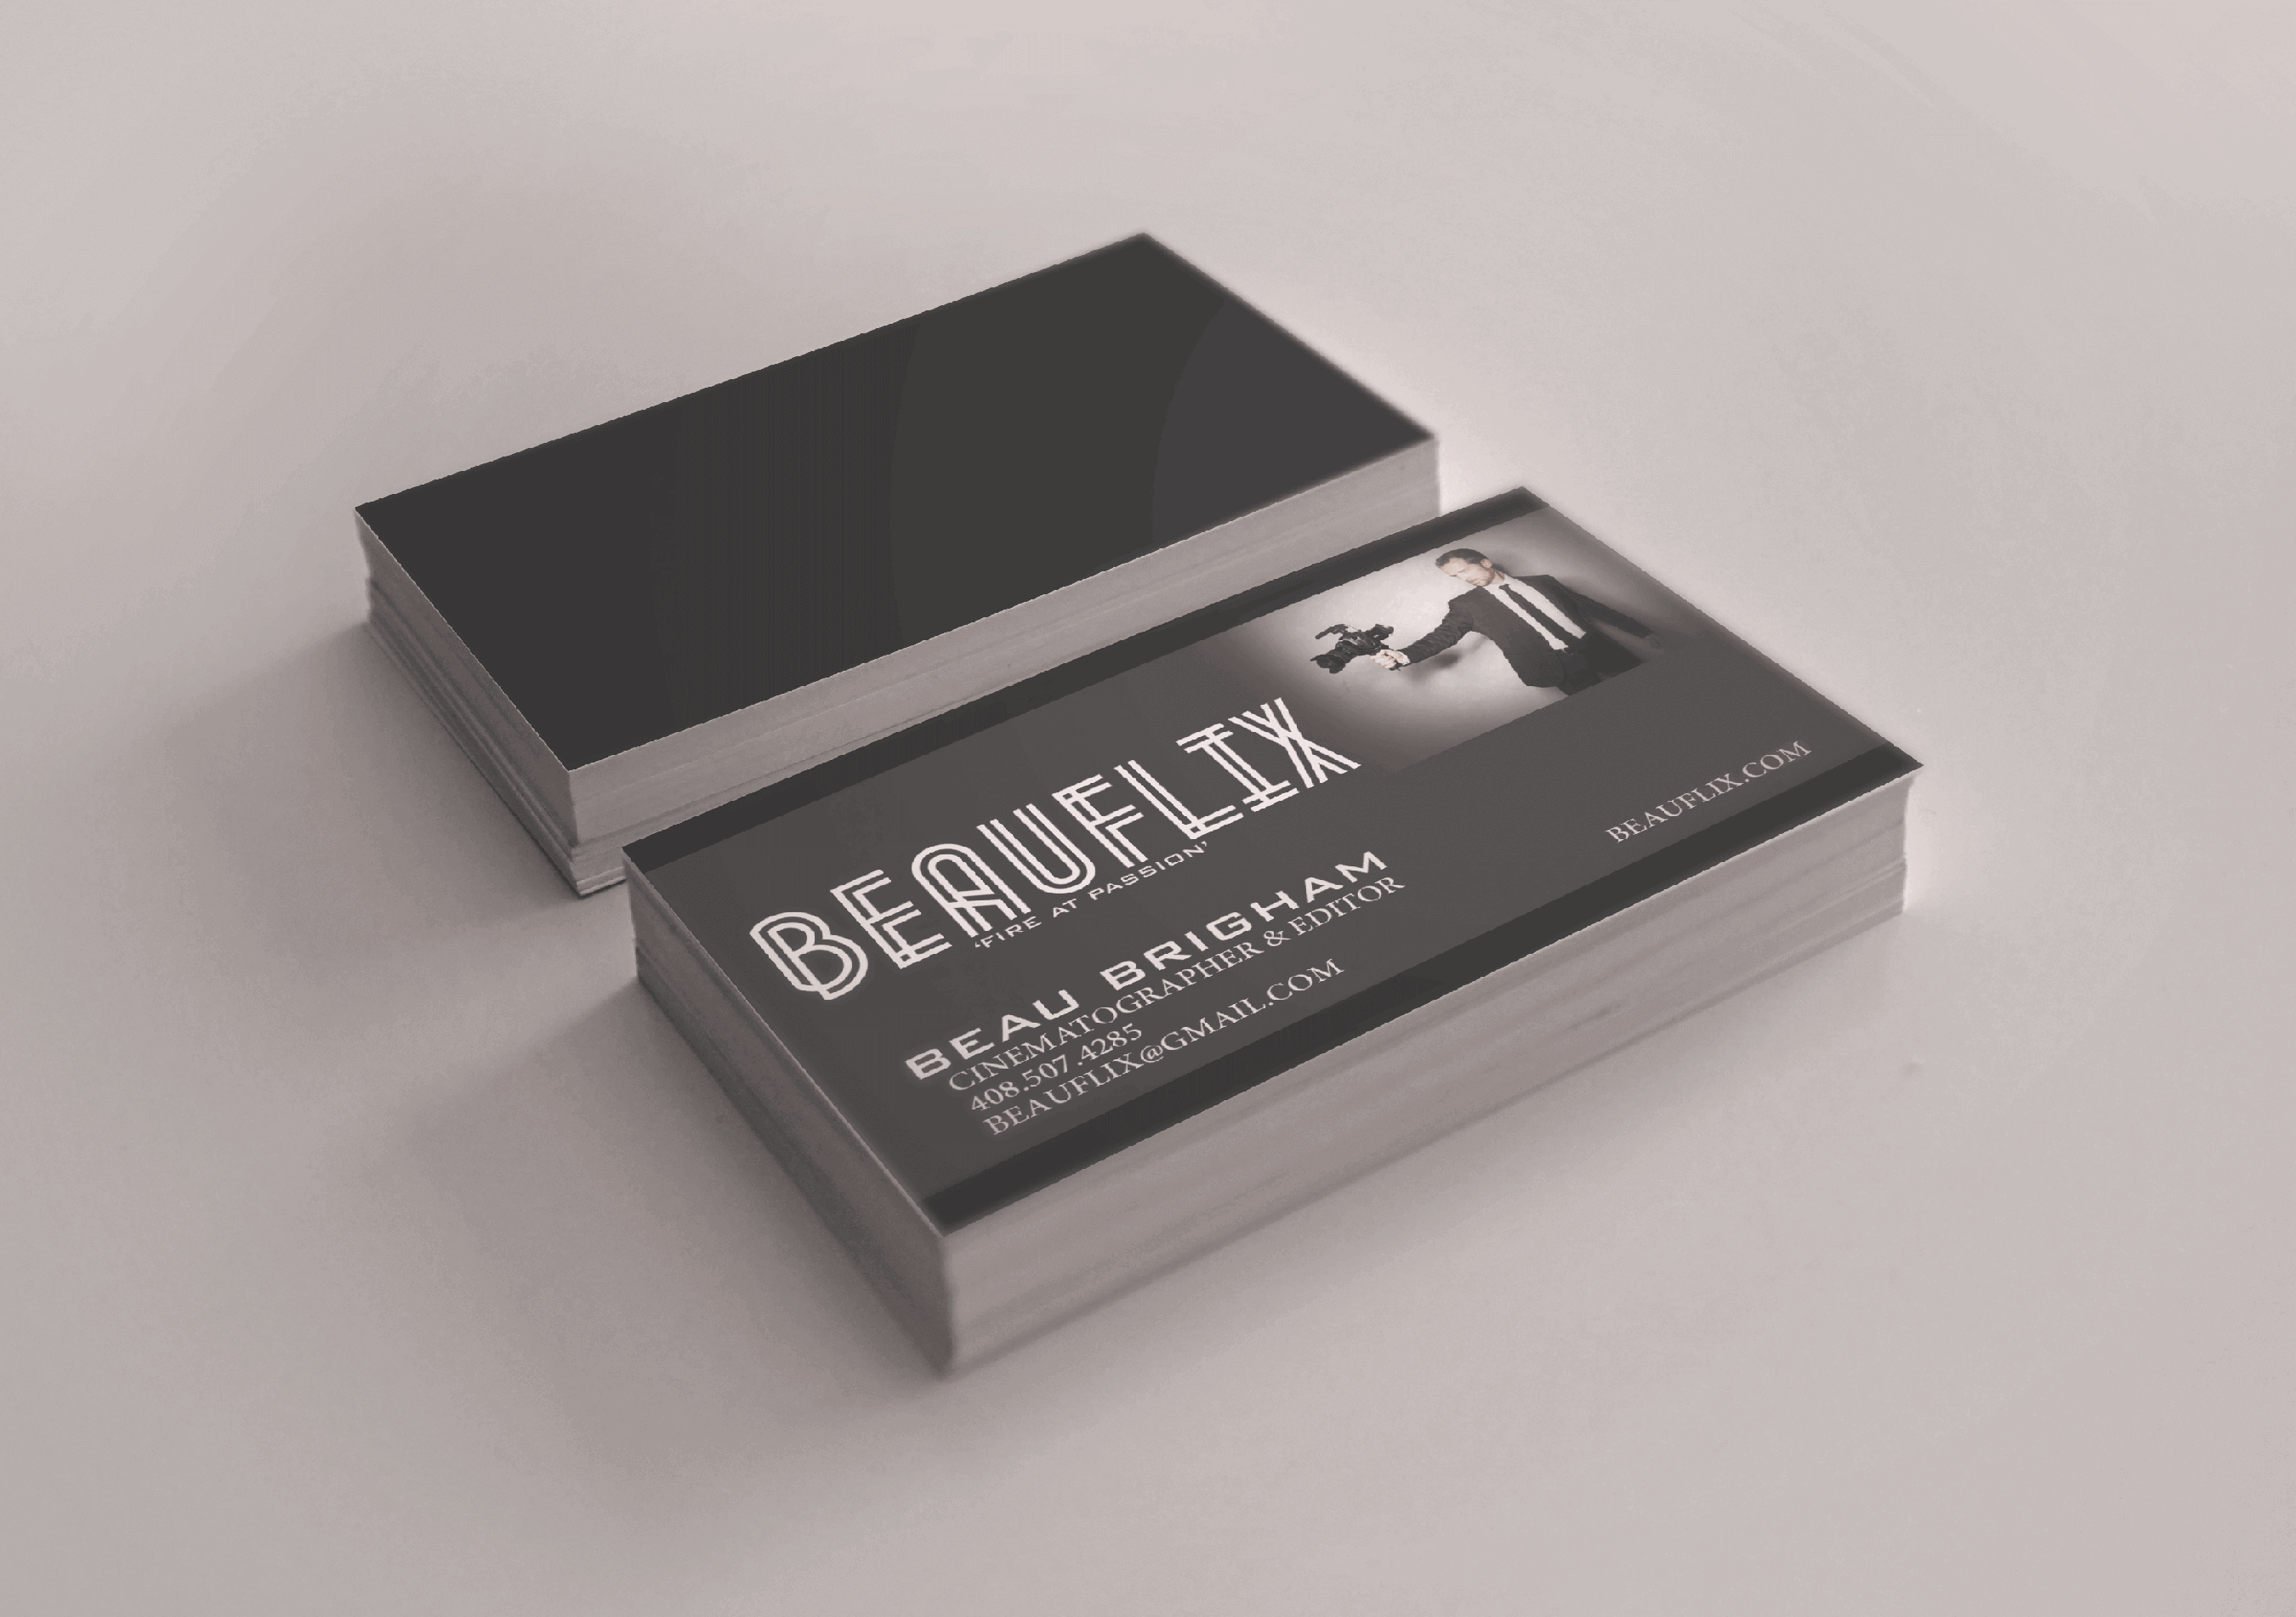 Beauflix Business Cards - The Chase Design